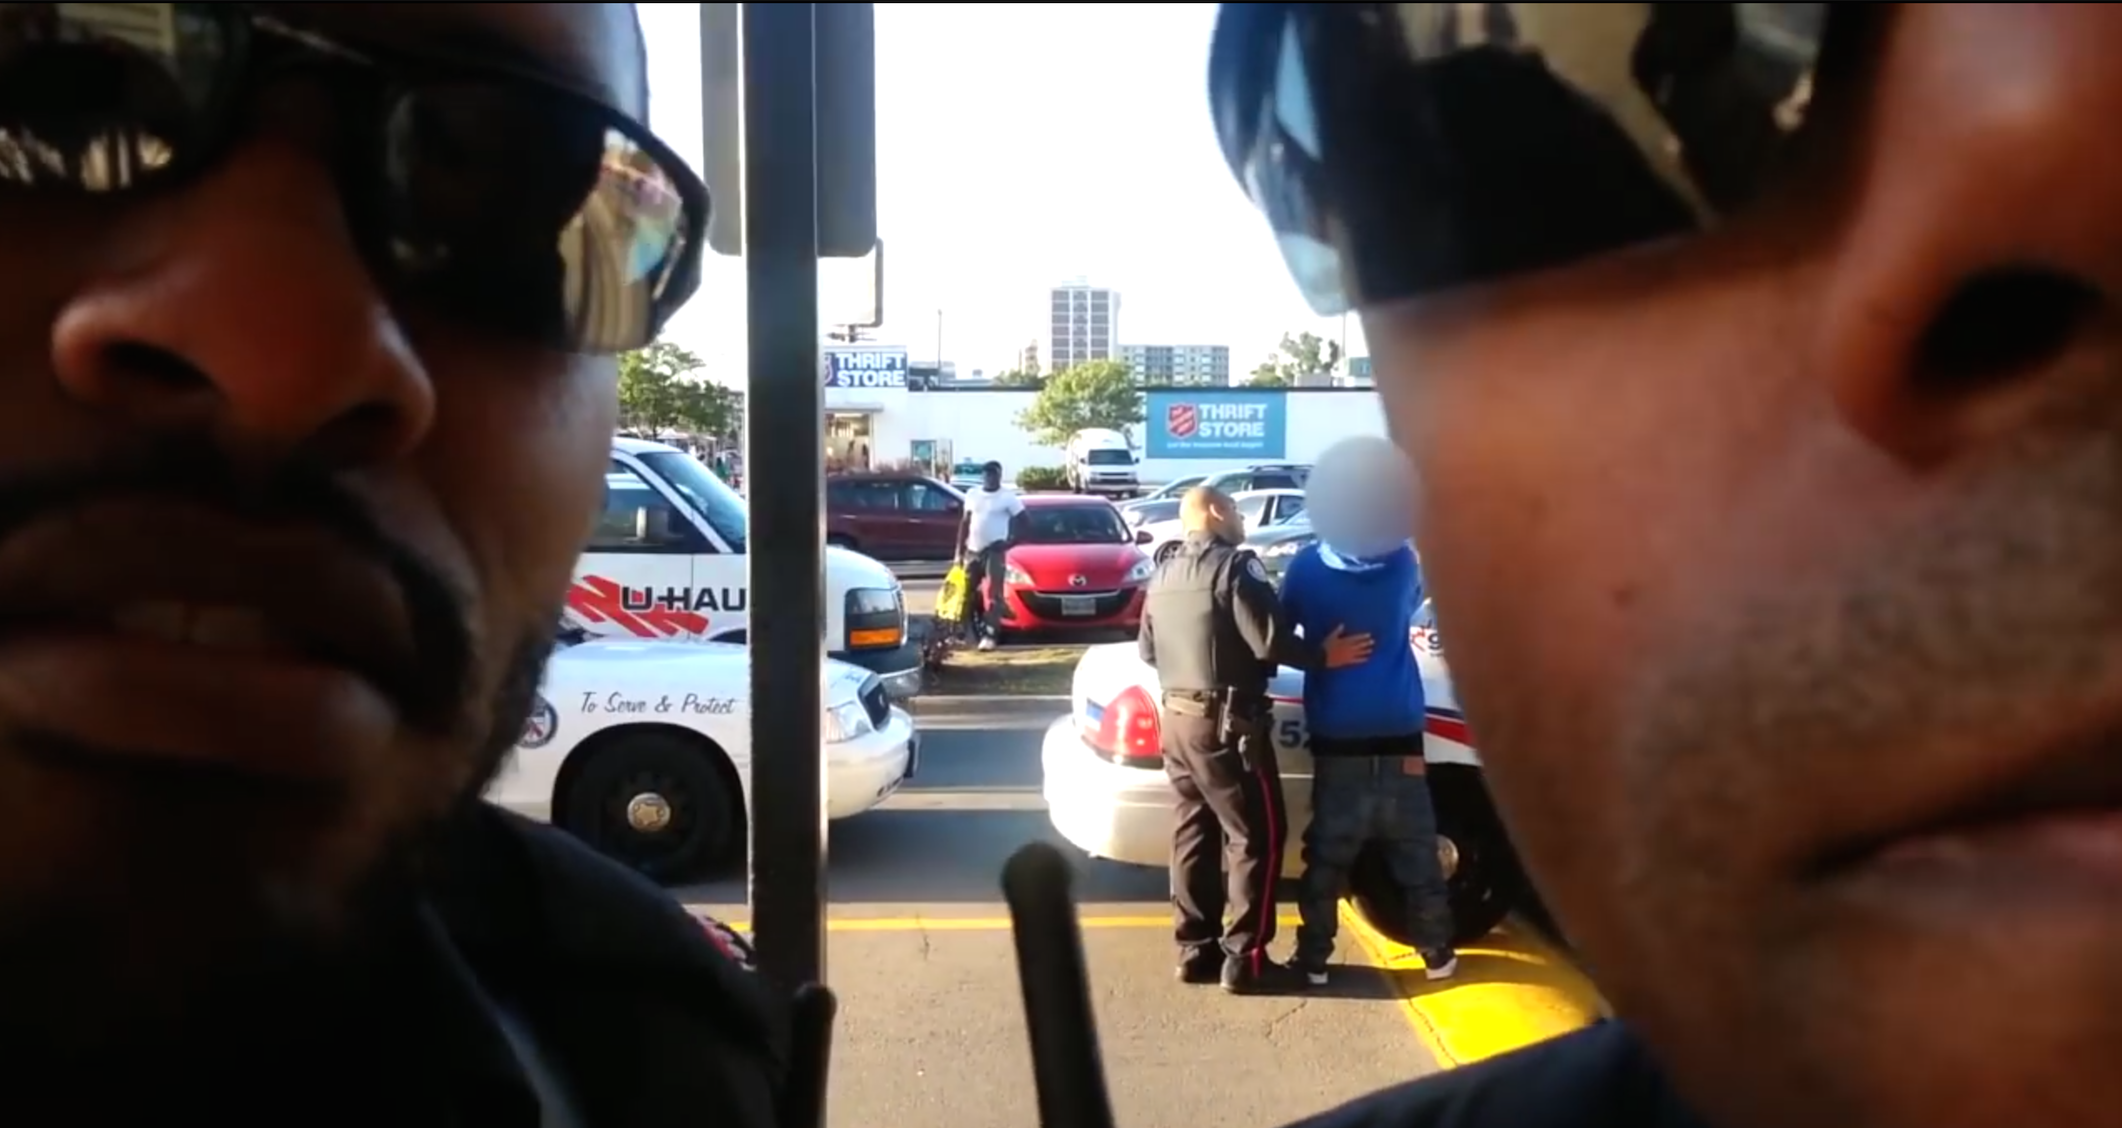 TPS officers obstruct Mike Miller's camera